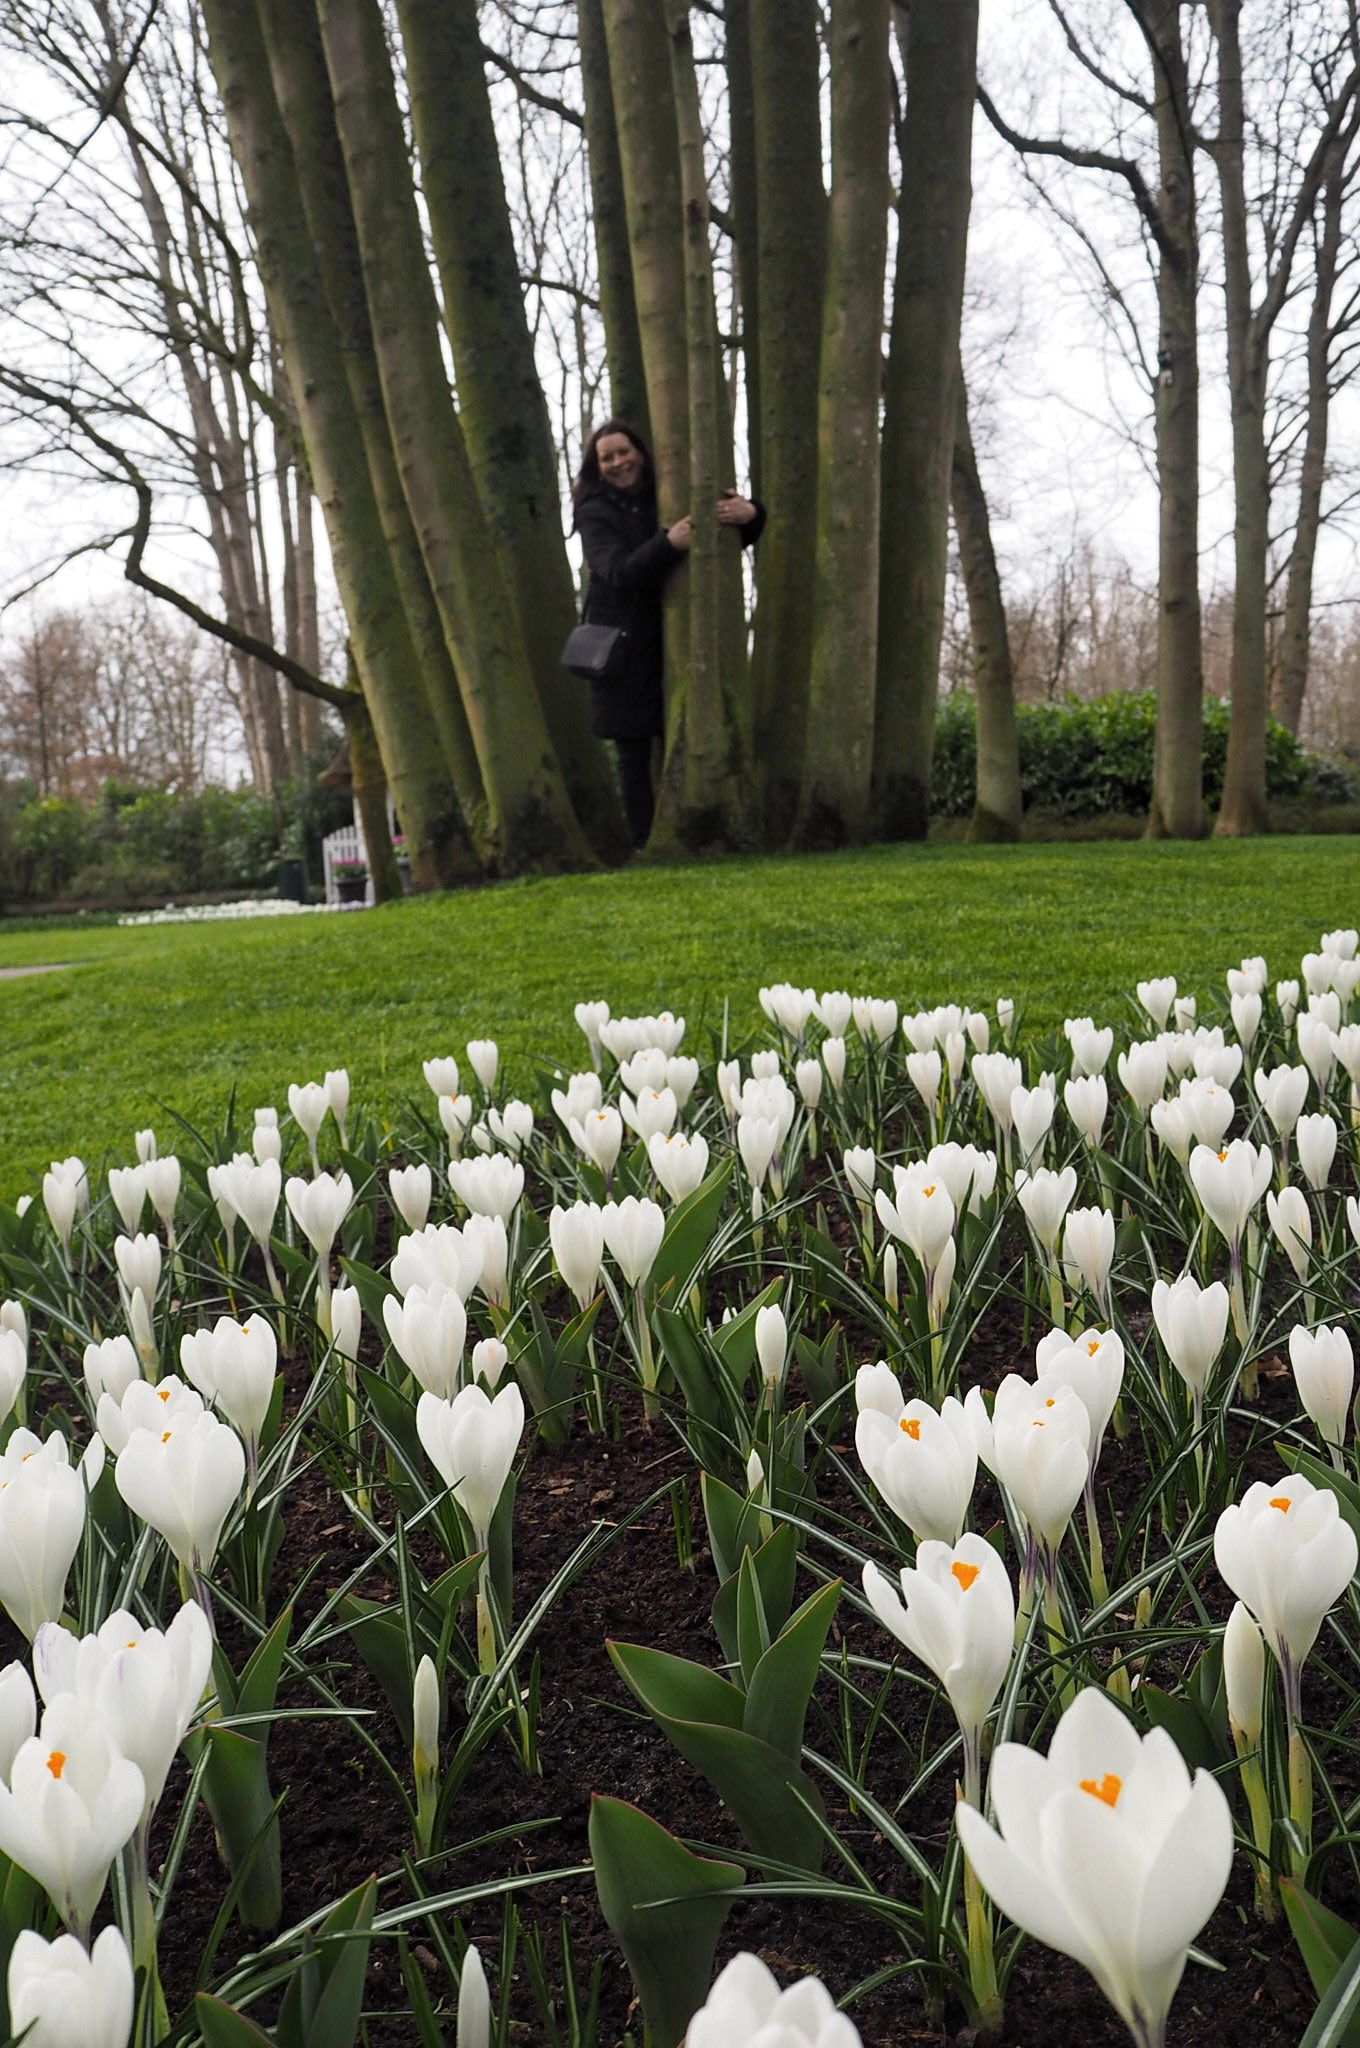 At one with nature at Keukenhof Tulip Gardens